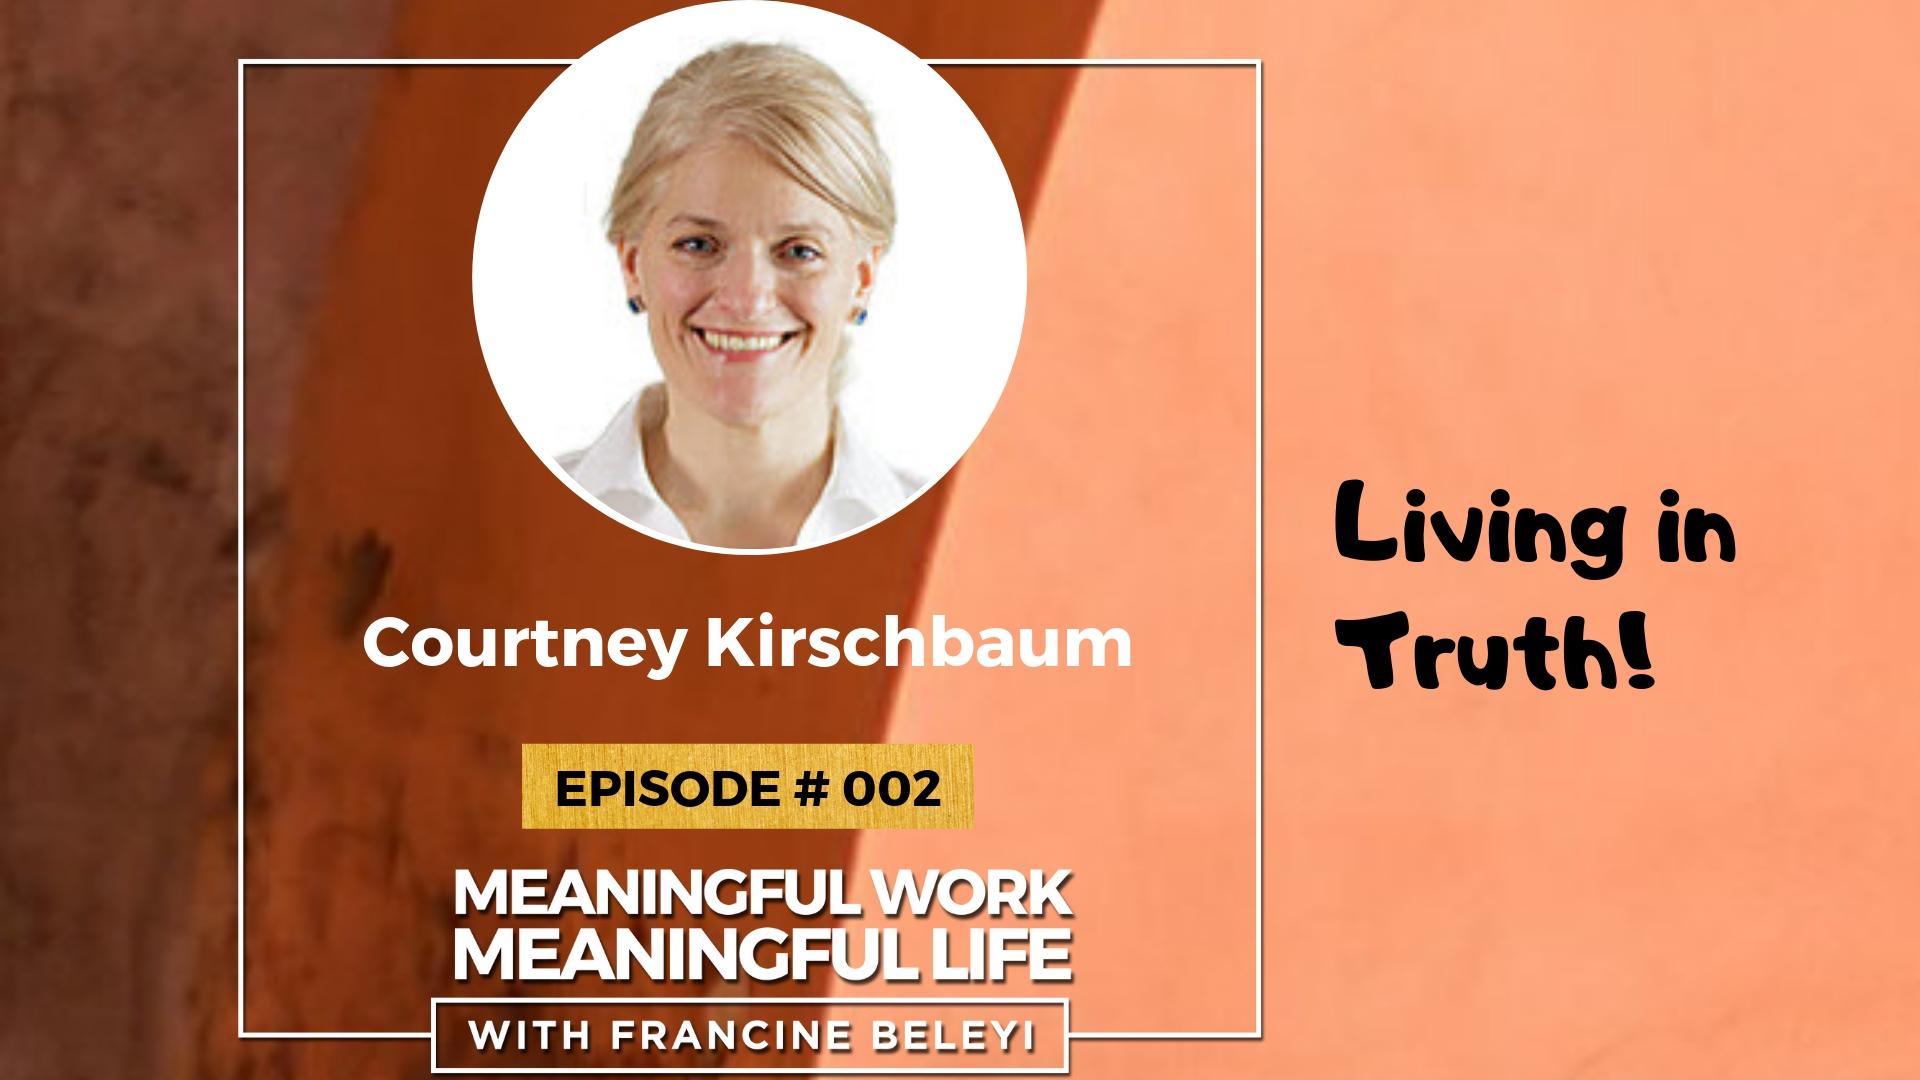 meaningful work meaningful life podcast Courtney Kirschbaum